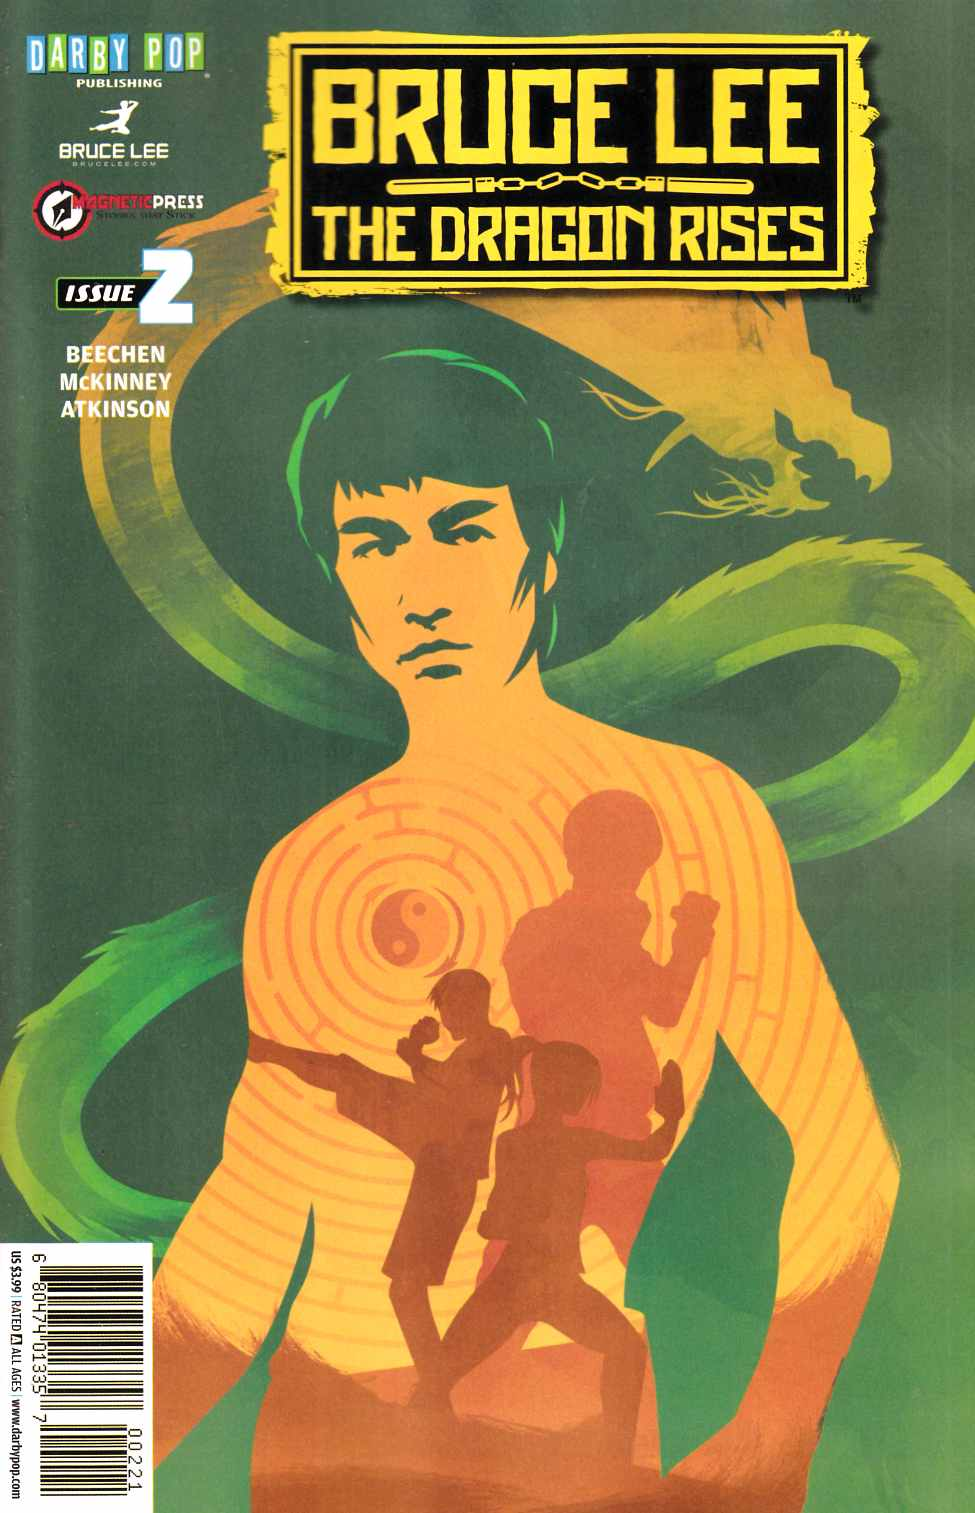 Bruce Lee Dragon Rises #2 Cover B [Darby Pop Comic] THUMBNAIL